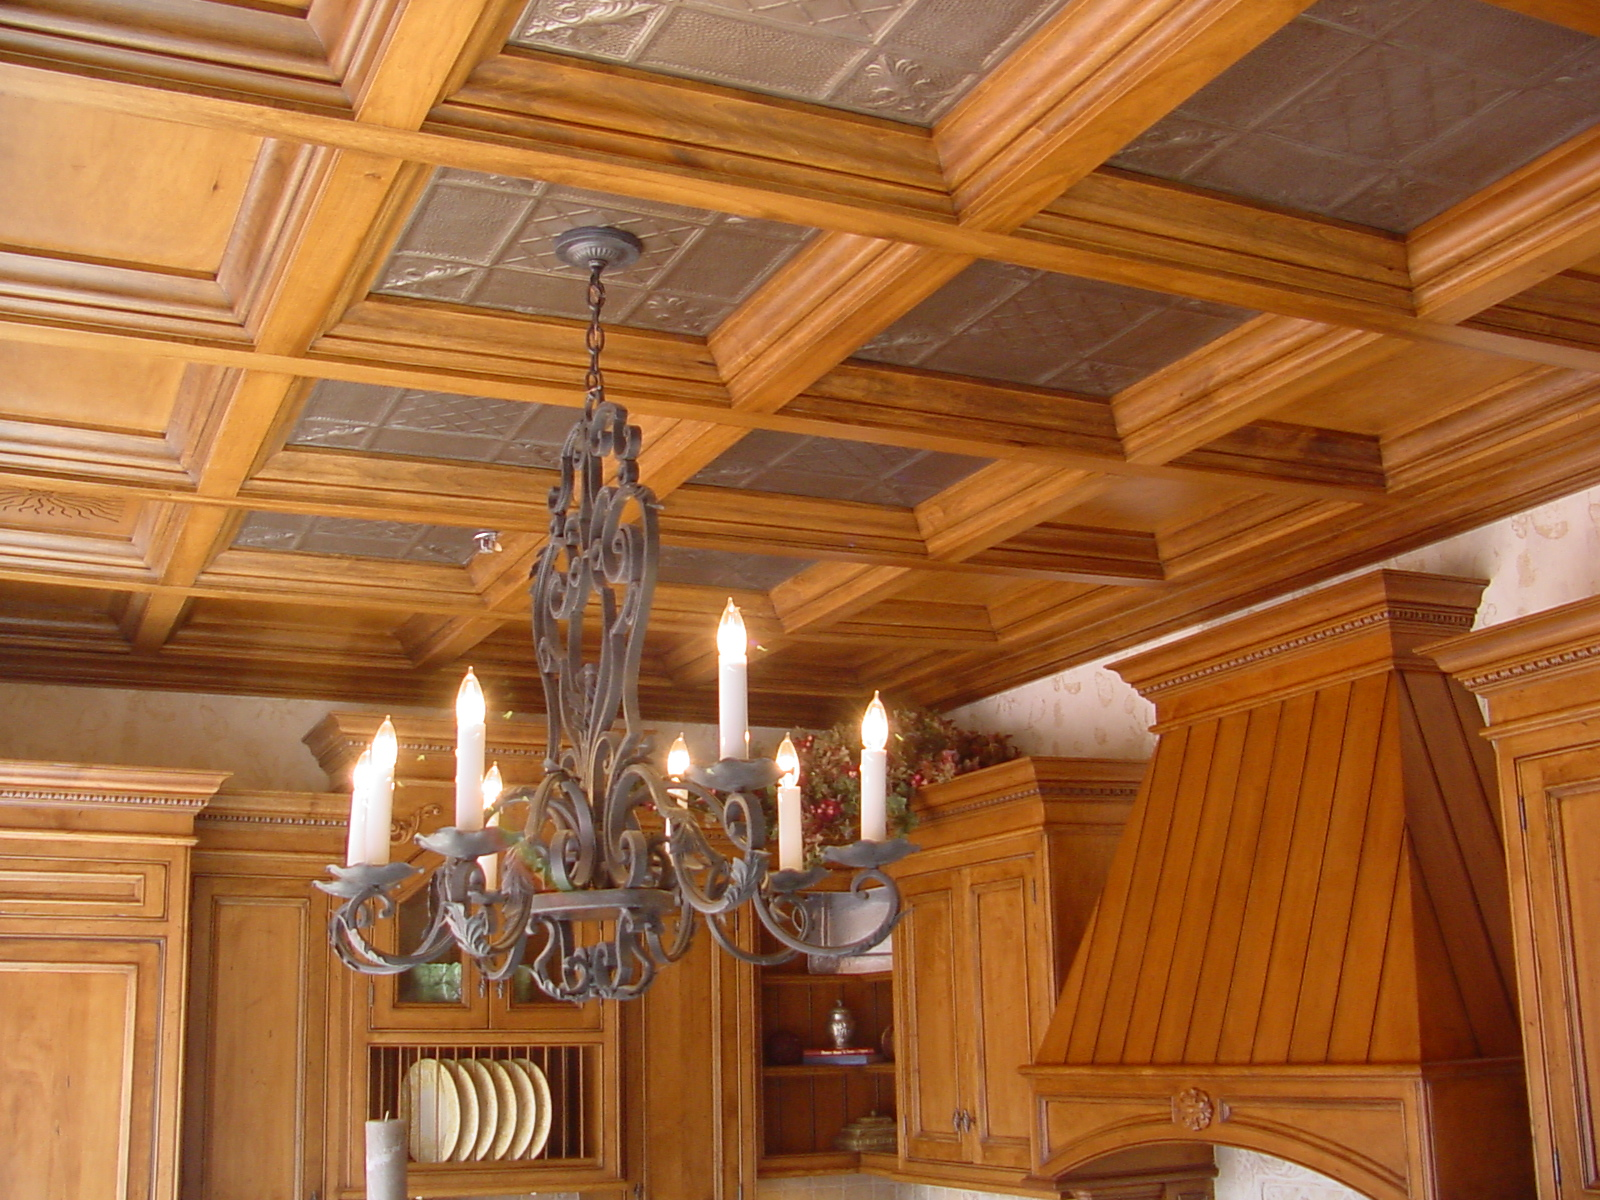 Photos Of Coffered Ceilings